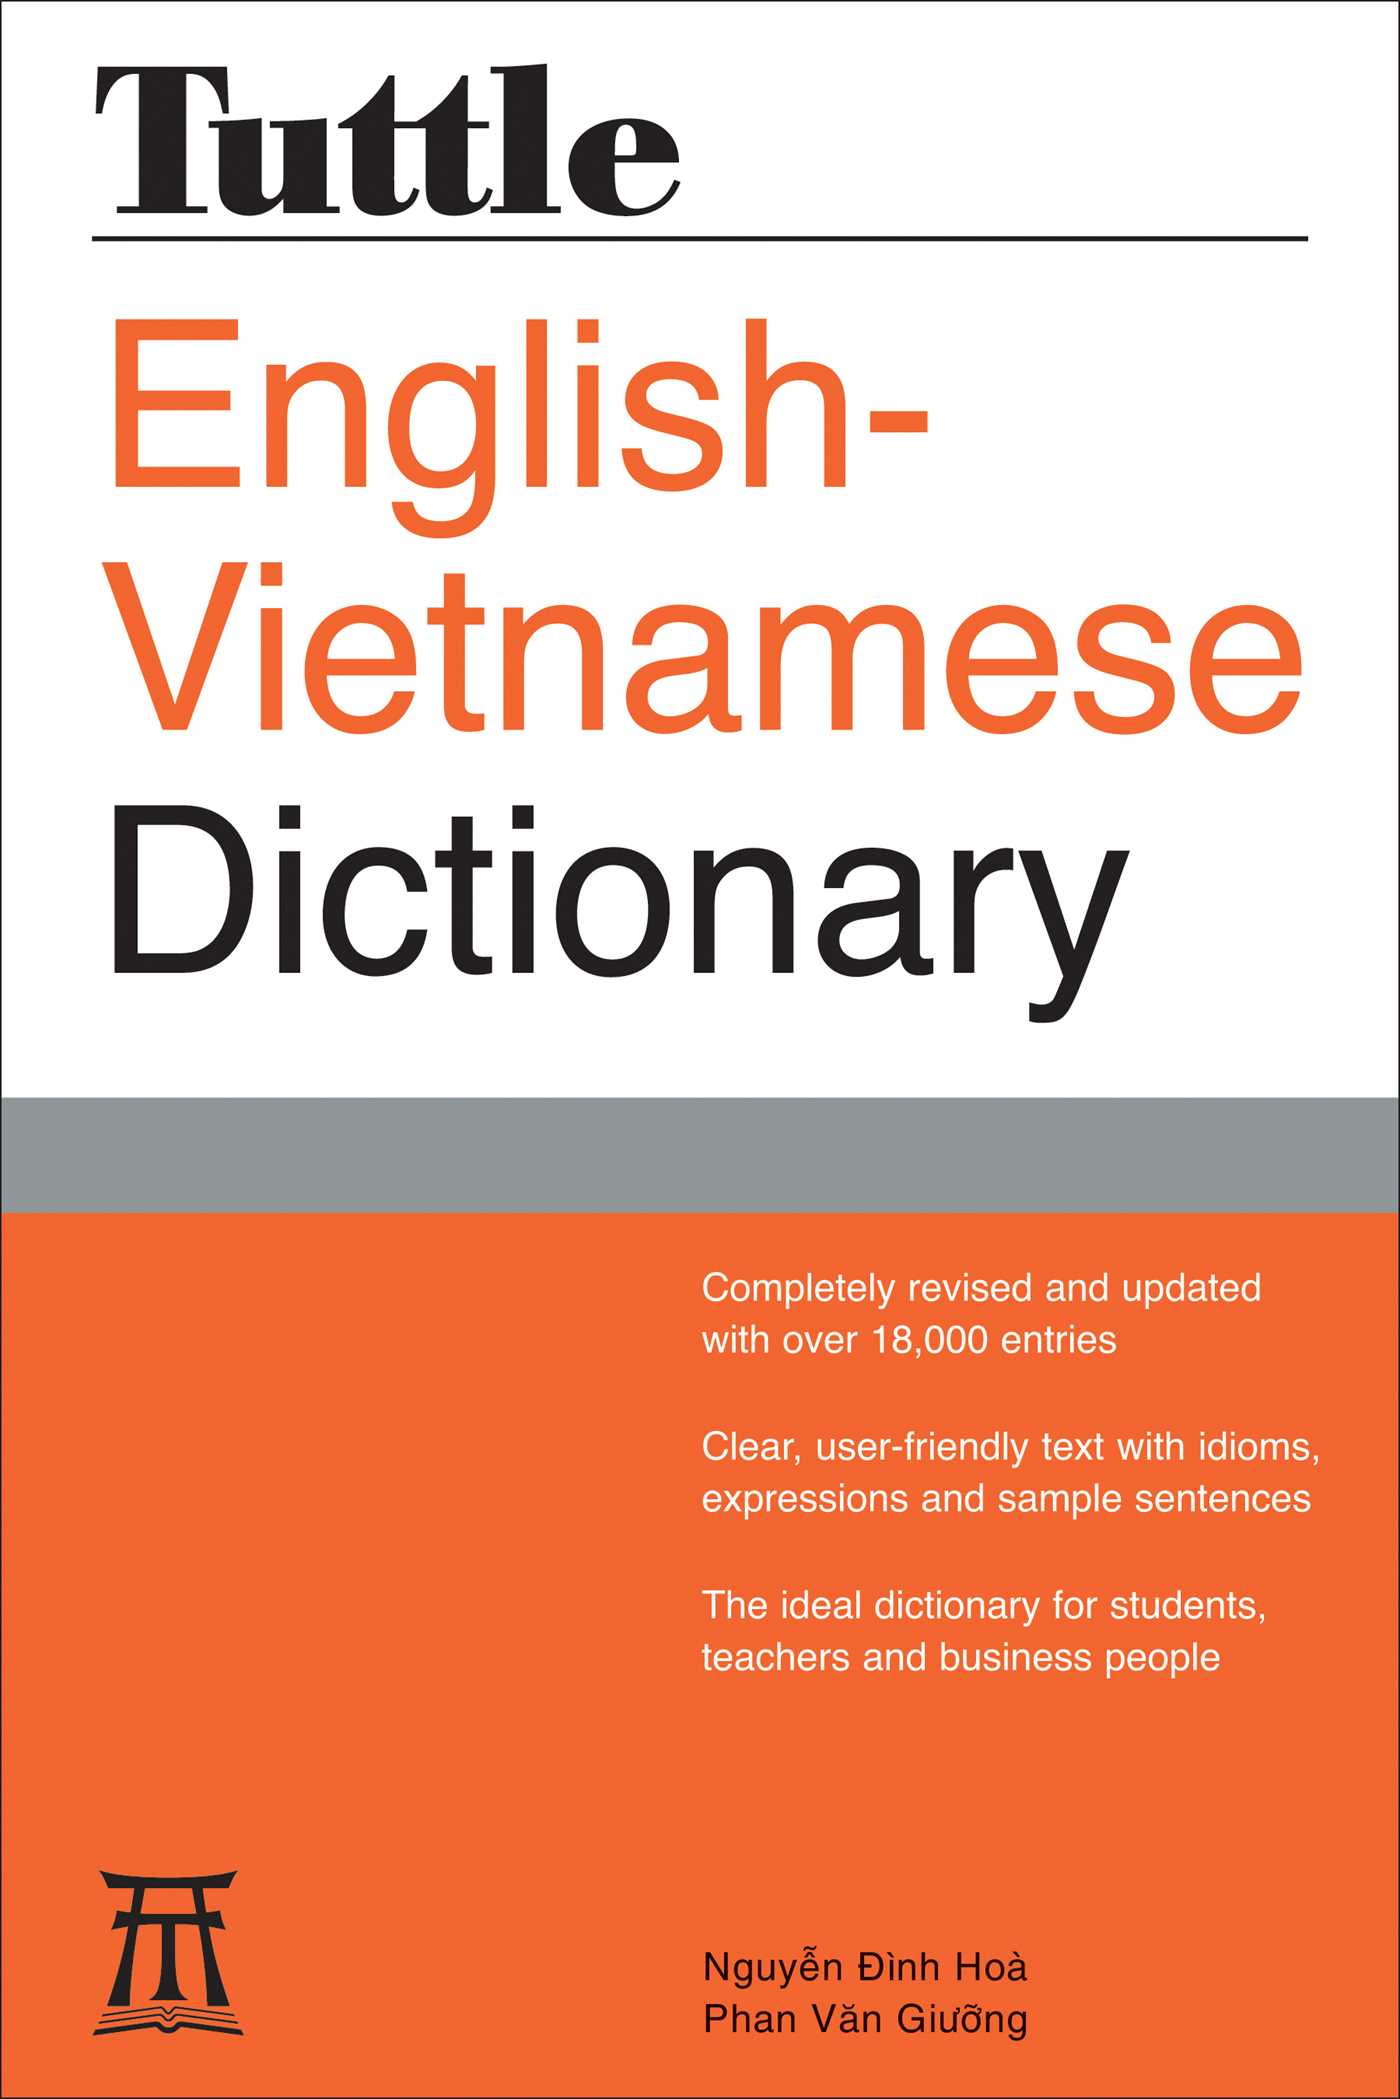 Tuttle english vietnamese dictionary 9780804846721 hr